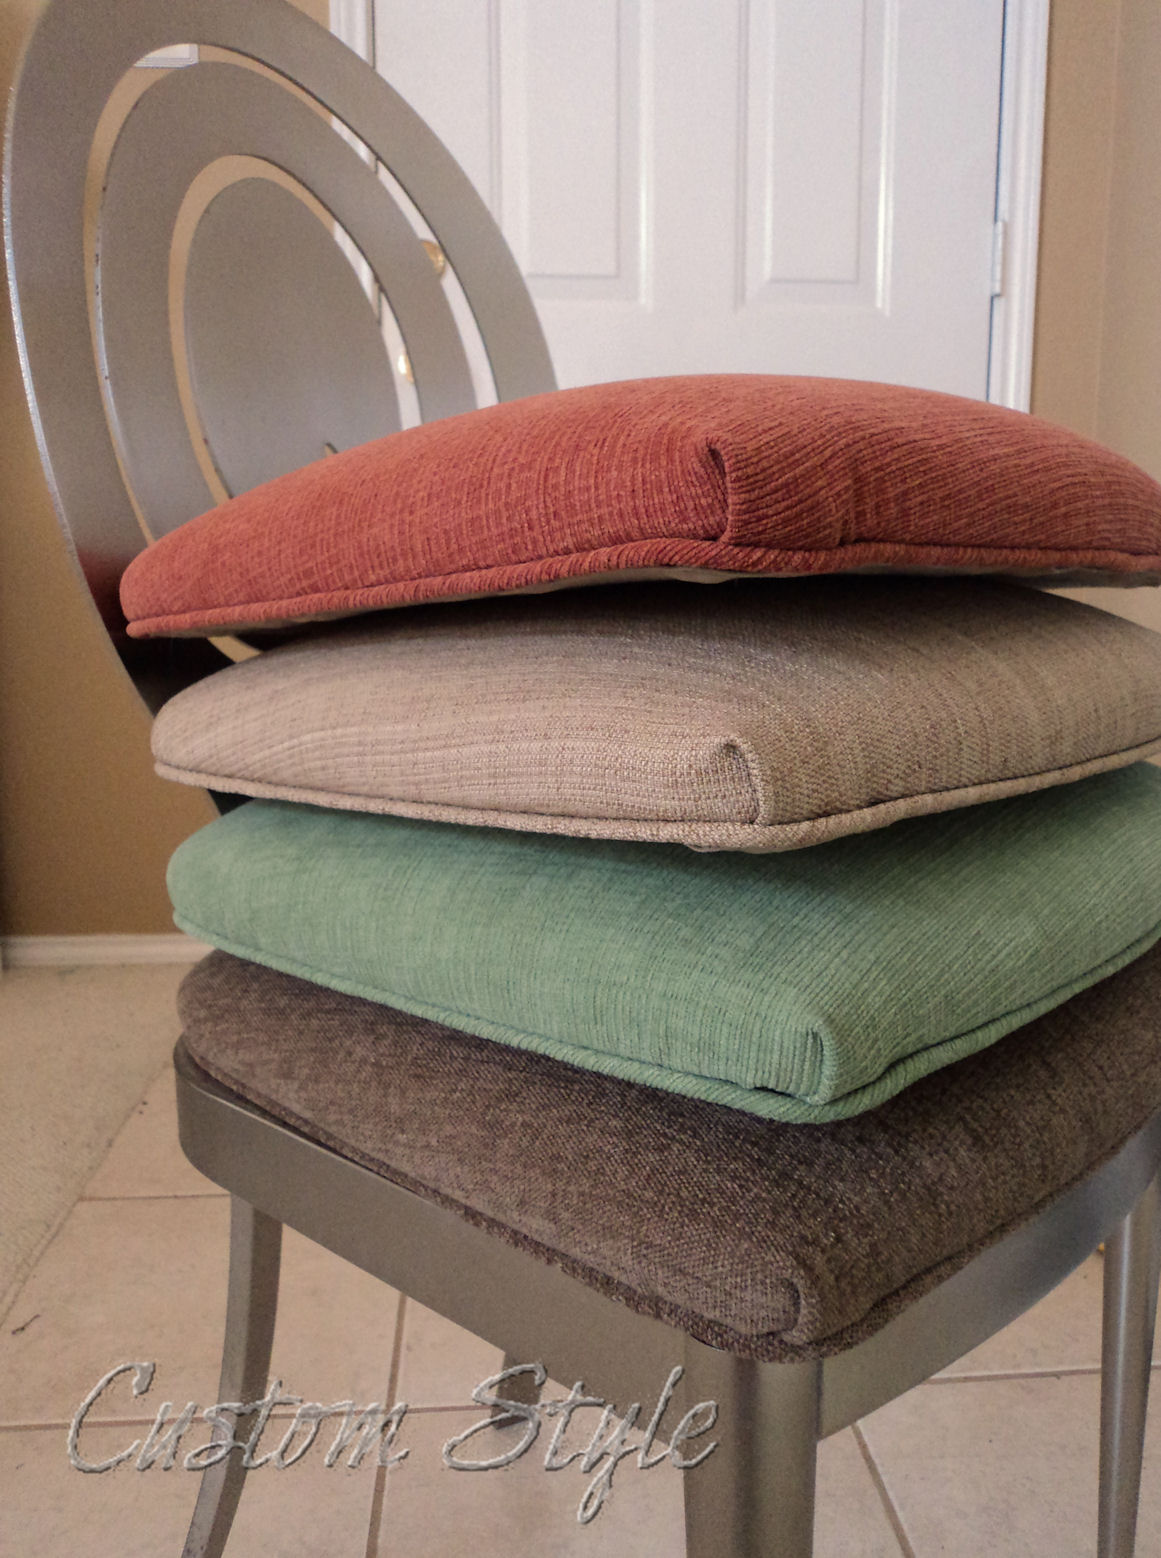 Incredible Dining Chair Cushions 1161 x 1558 · 280 kB · jpeg